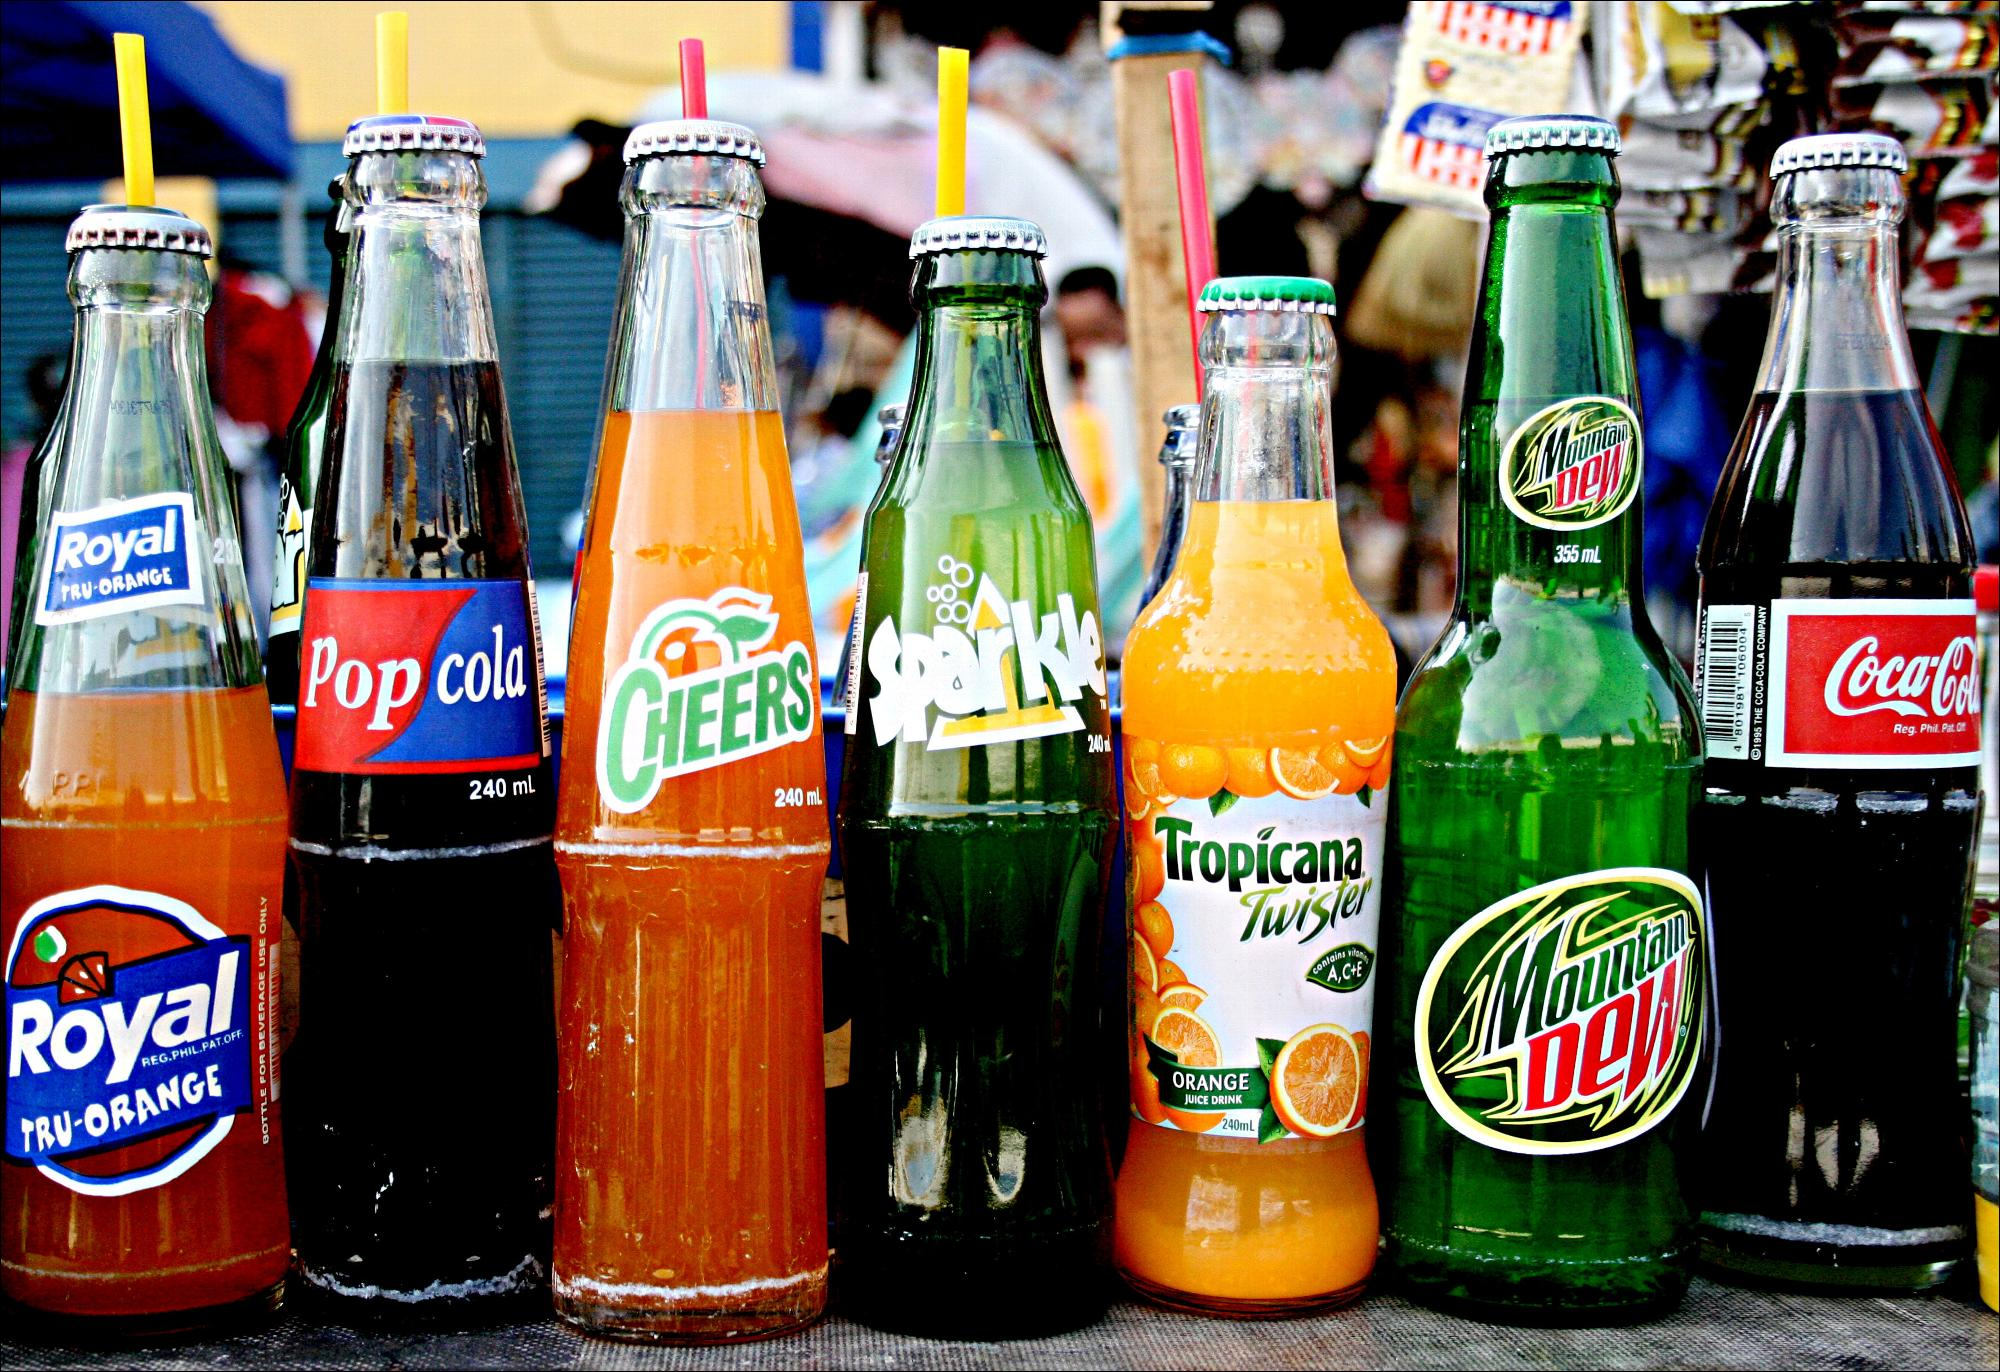 Berkeley, California is rethinking the approach to the obesity crisis with a tax on added sugar in beverages.